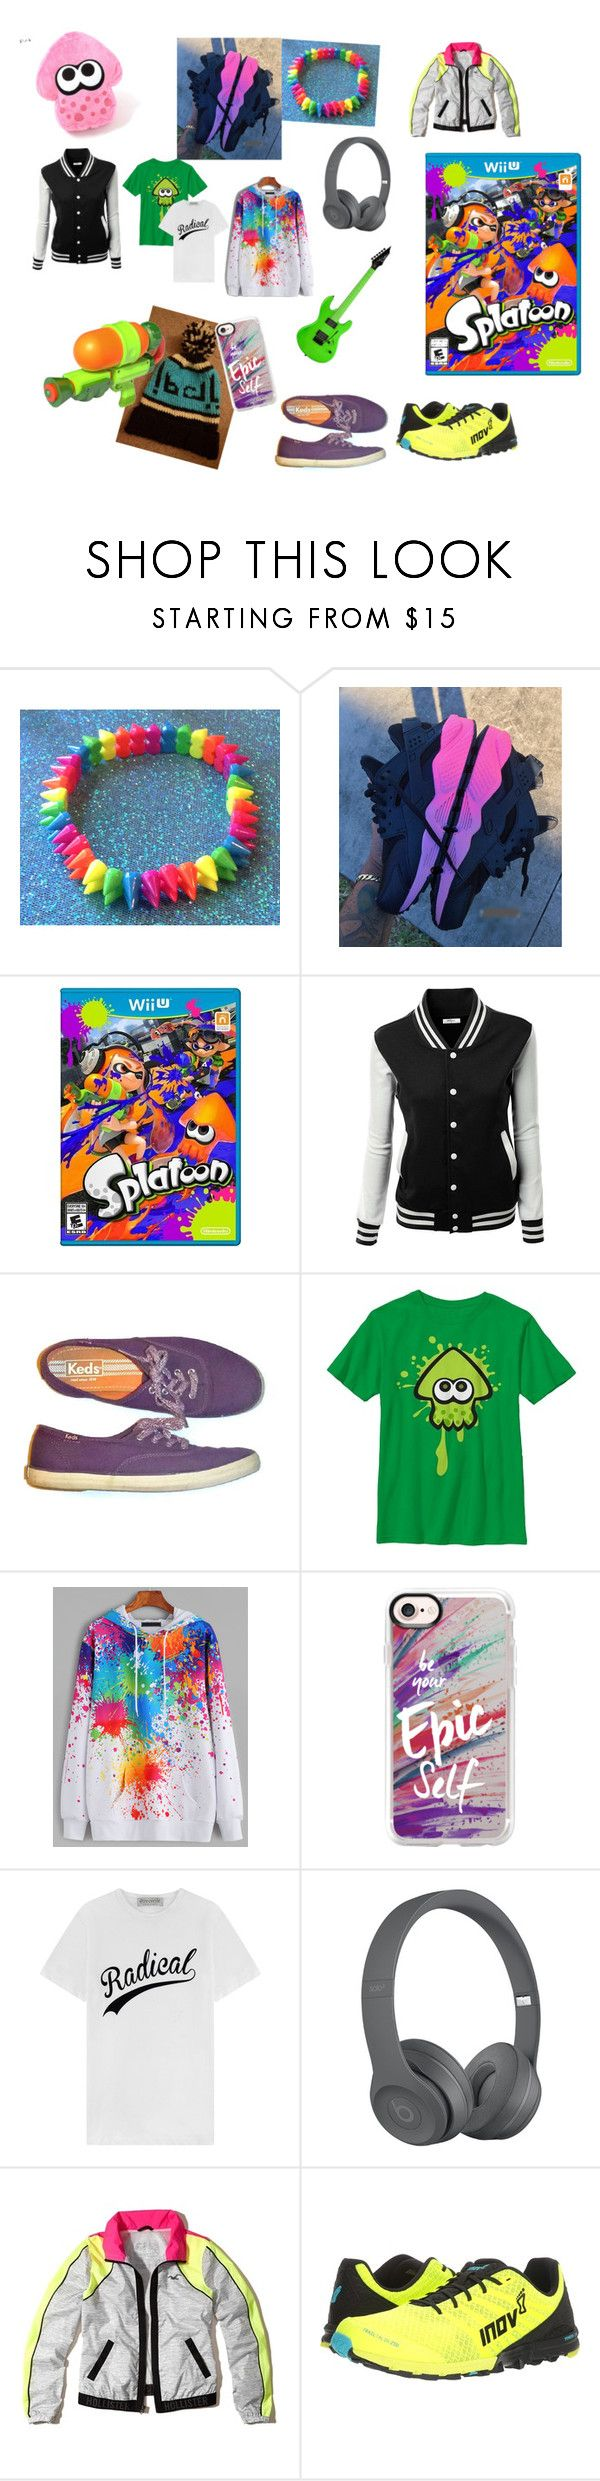 """You're a Kid You're a Squid"" by cookiepony101 ❤ liked on Polyvore featuring Keds, WithChic, Casetify, Être Cécile, Hollister Co., Inov-8 and Zone"